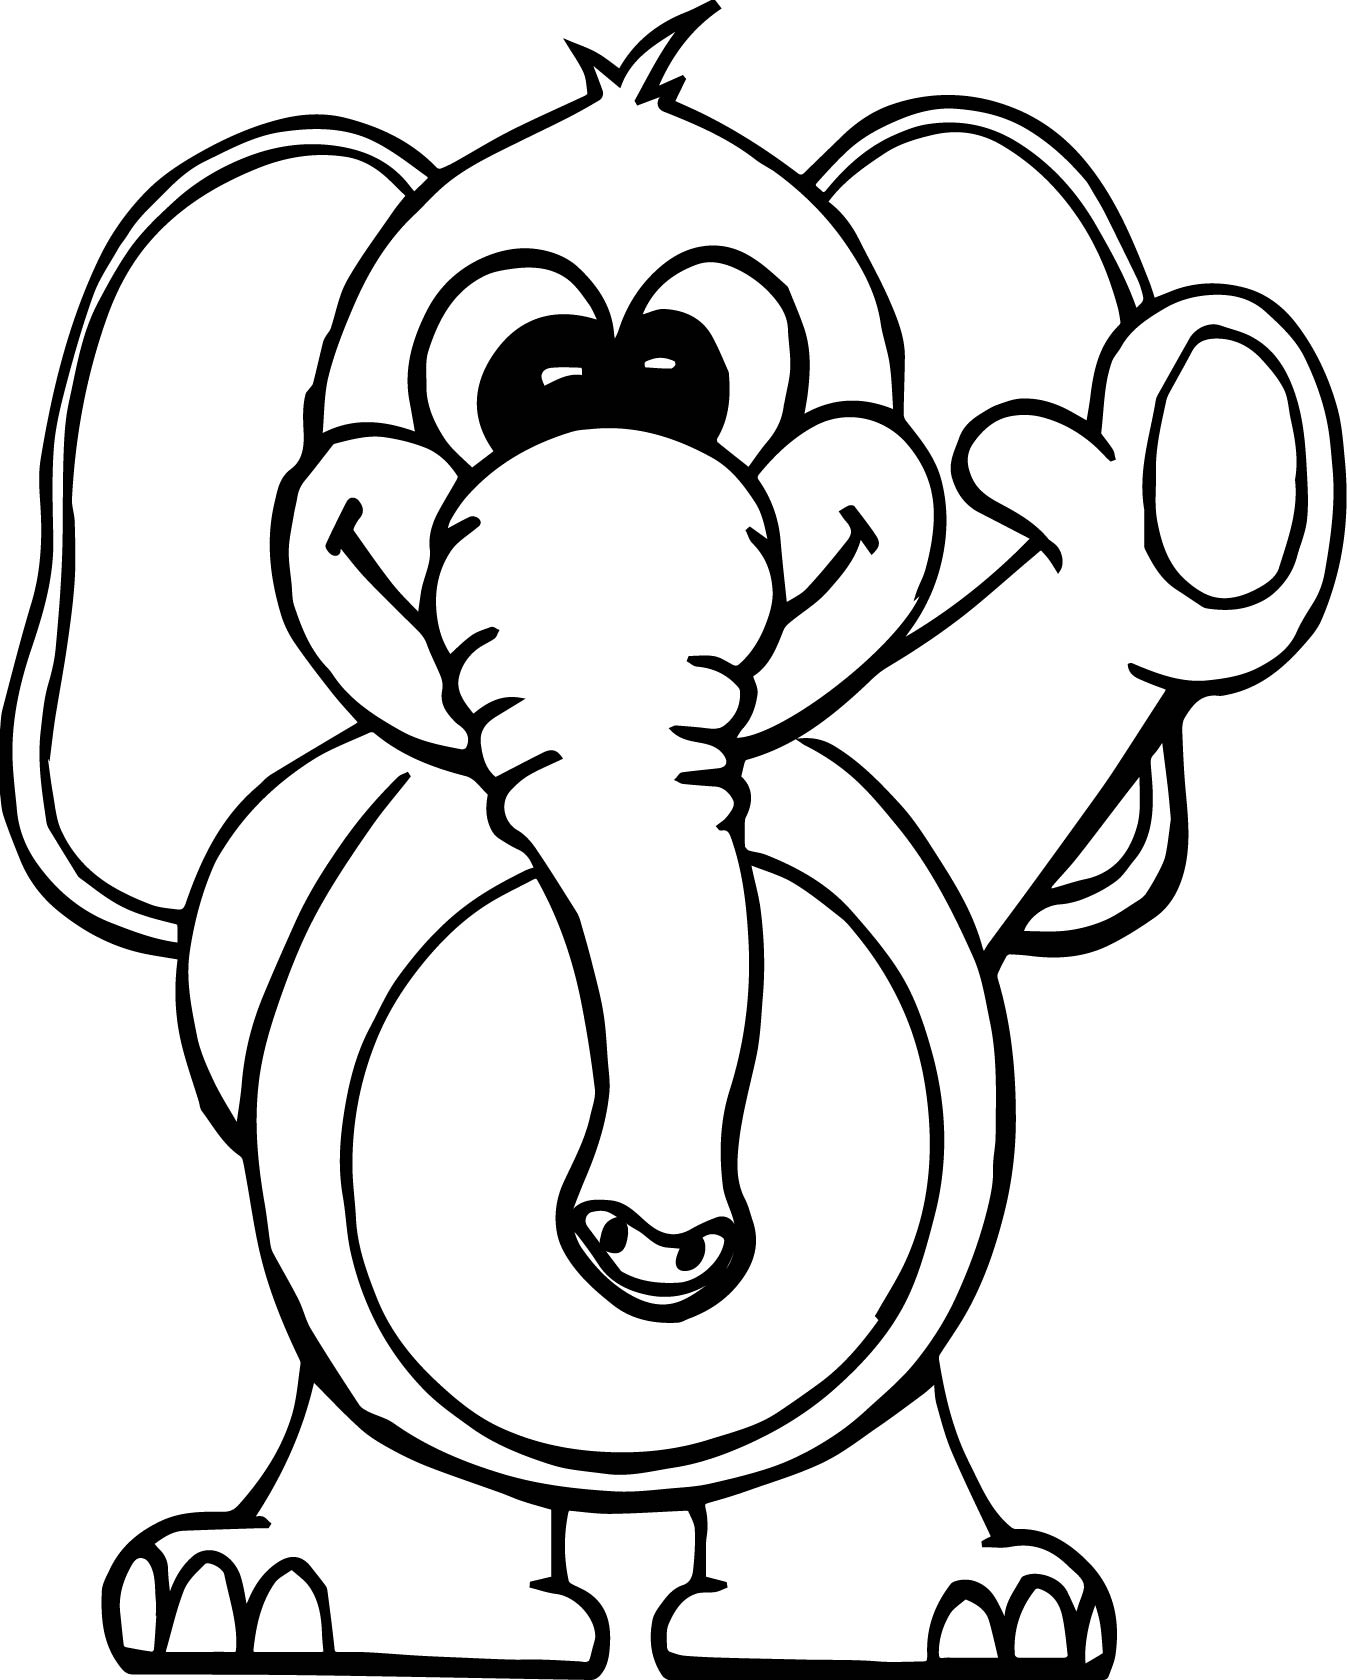 Hello Elephant Coloring Page